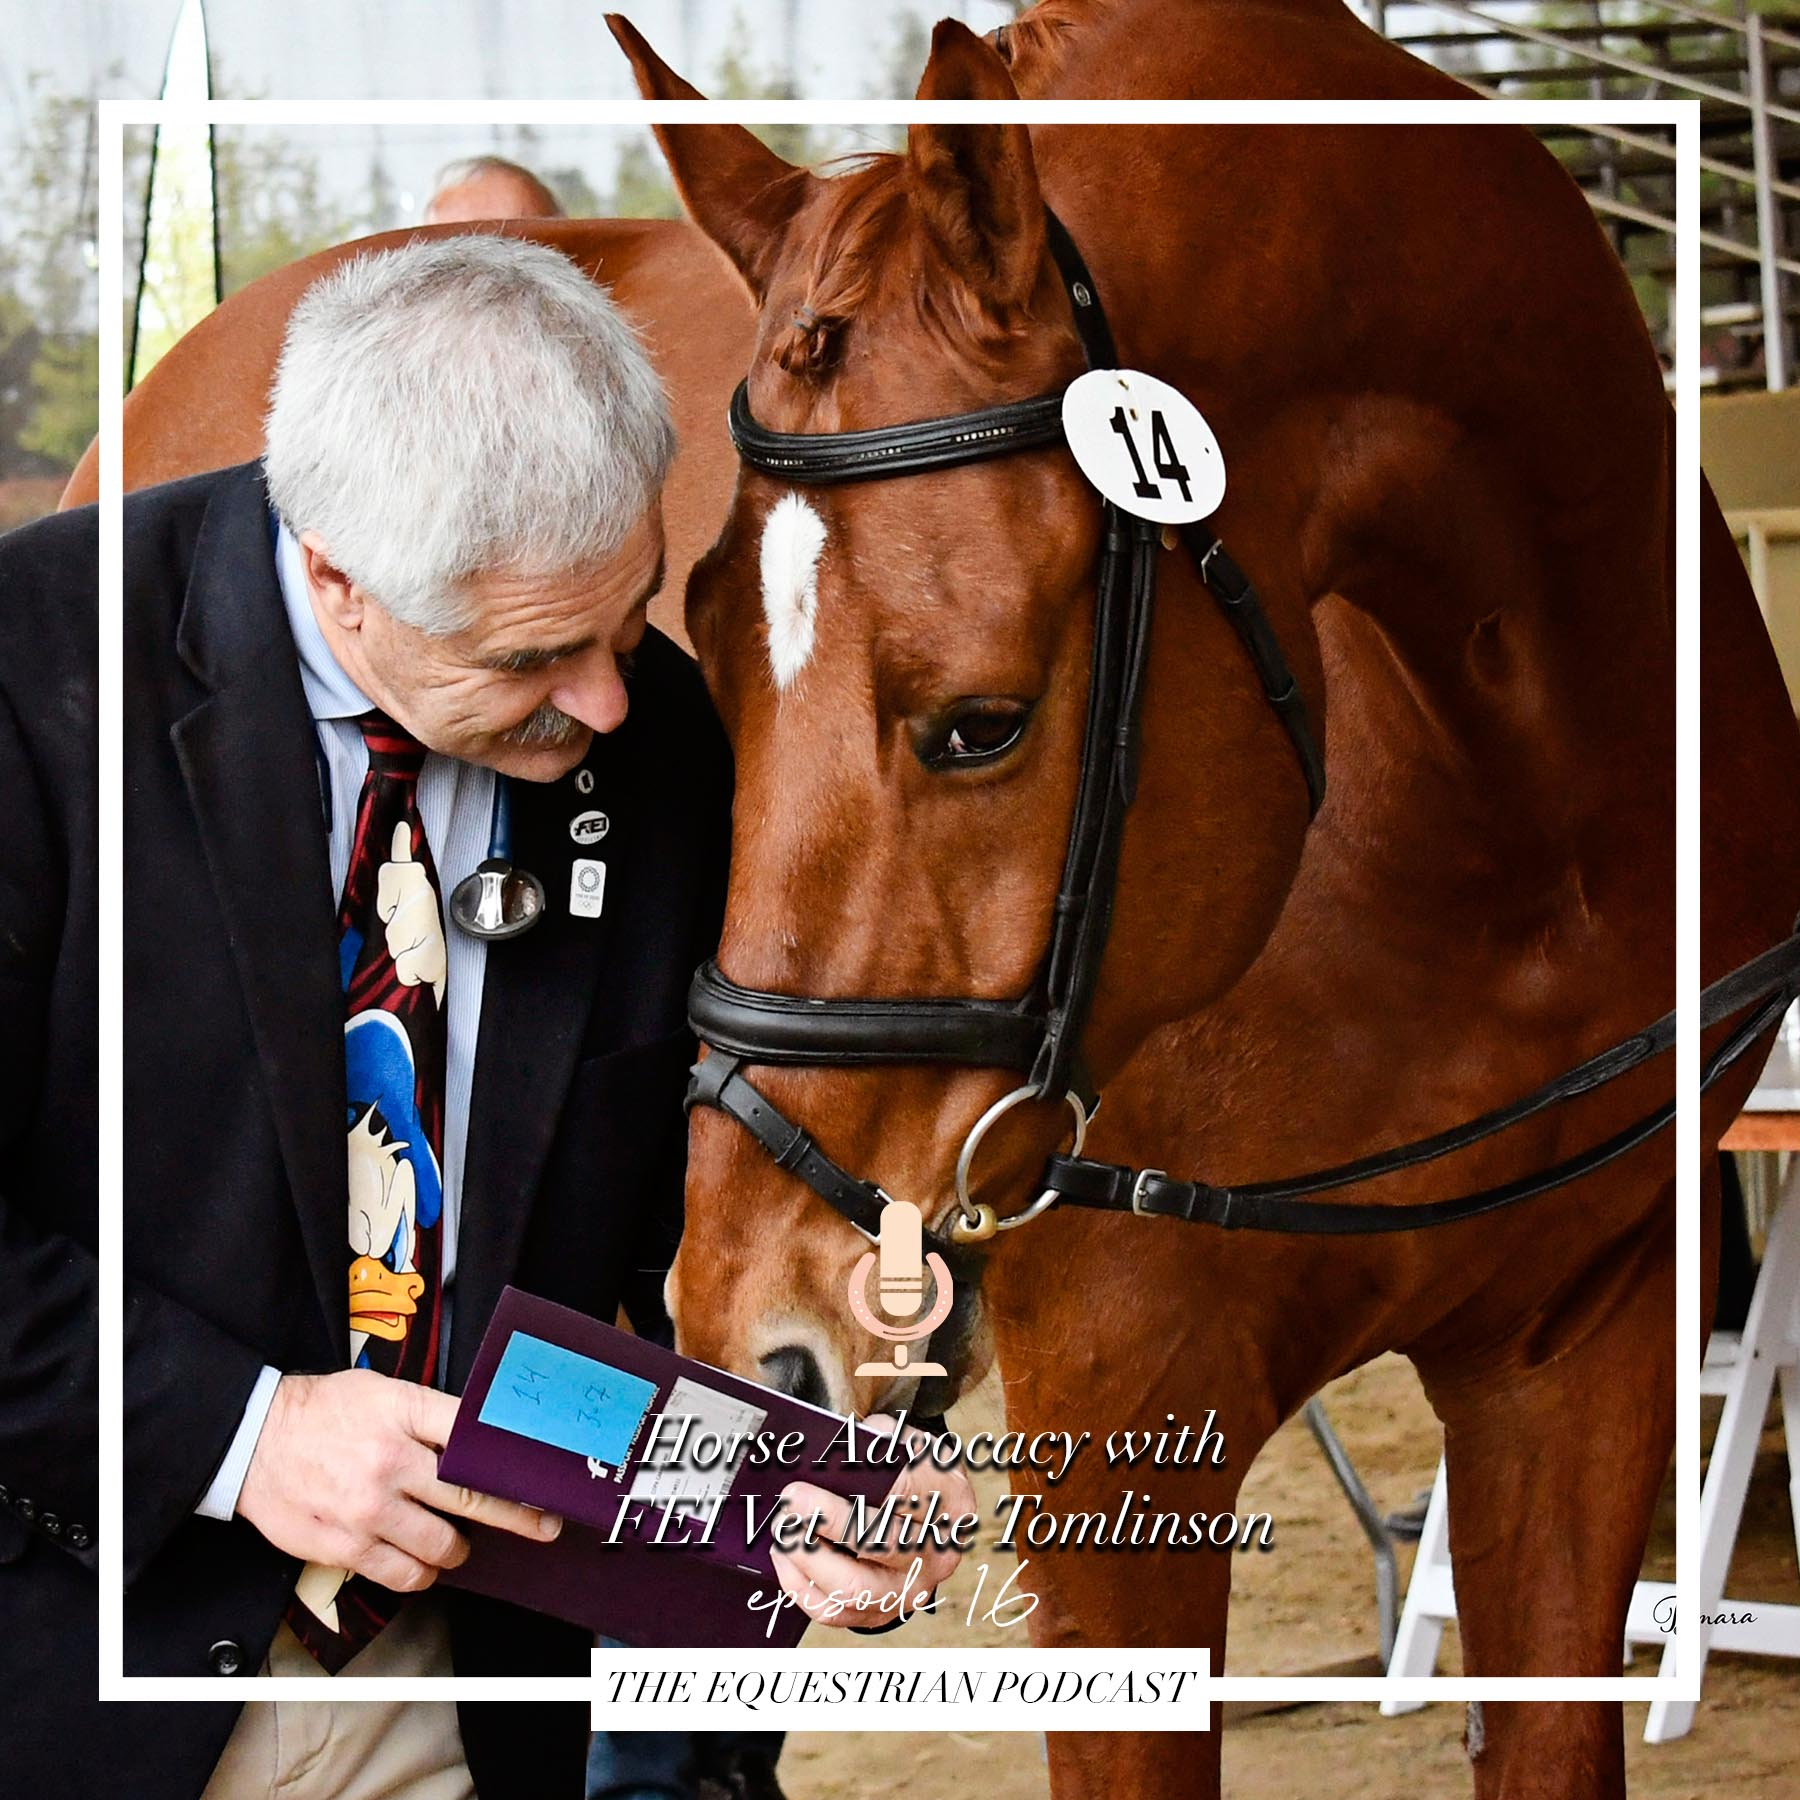 [EP] 16 Horse Advocacy with FEI Vet Mike Tomlinson